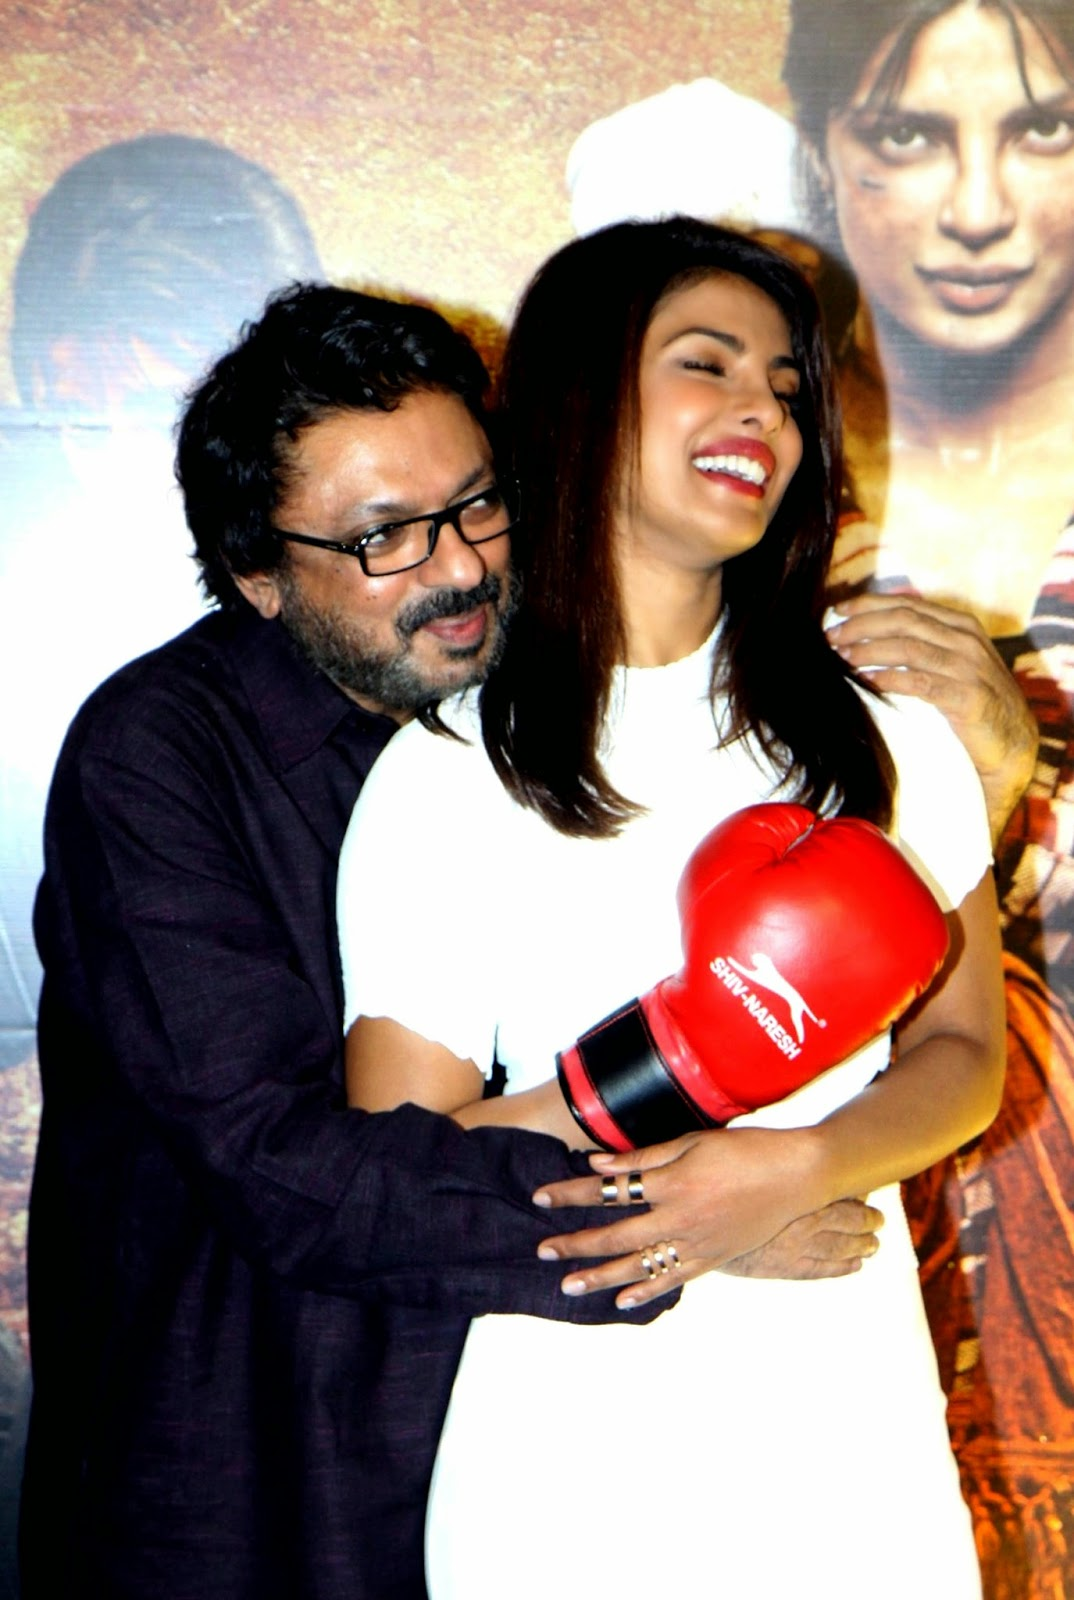 2014 movies, Bollywood, Bollywood actress, Entertainment, Mary Kom, Mary Kom Movie. Mary Kom Boxer, Movies, Priyanka Chopra, Priyanka Chopra Pictures, Sanjay Leela Bhansali, Showbiz,